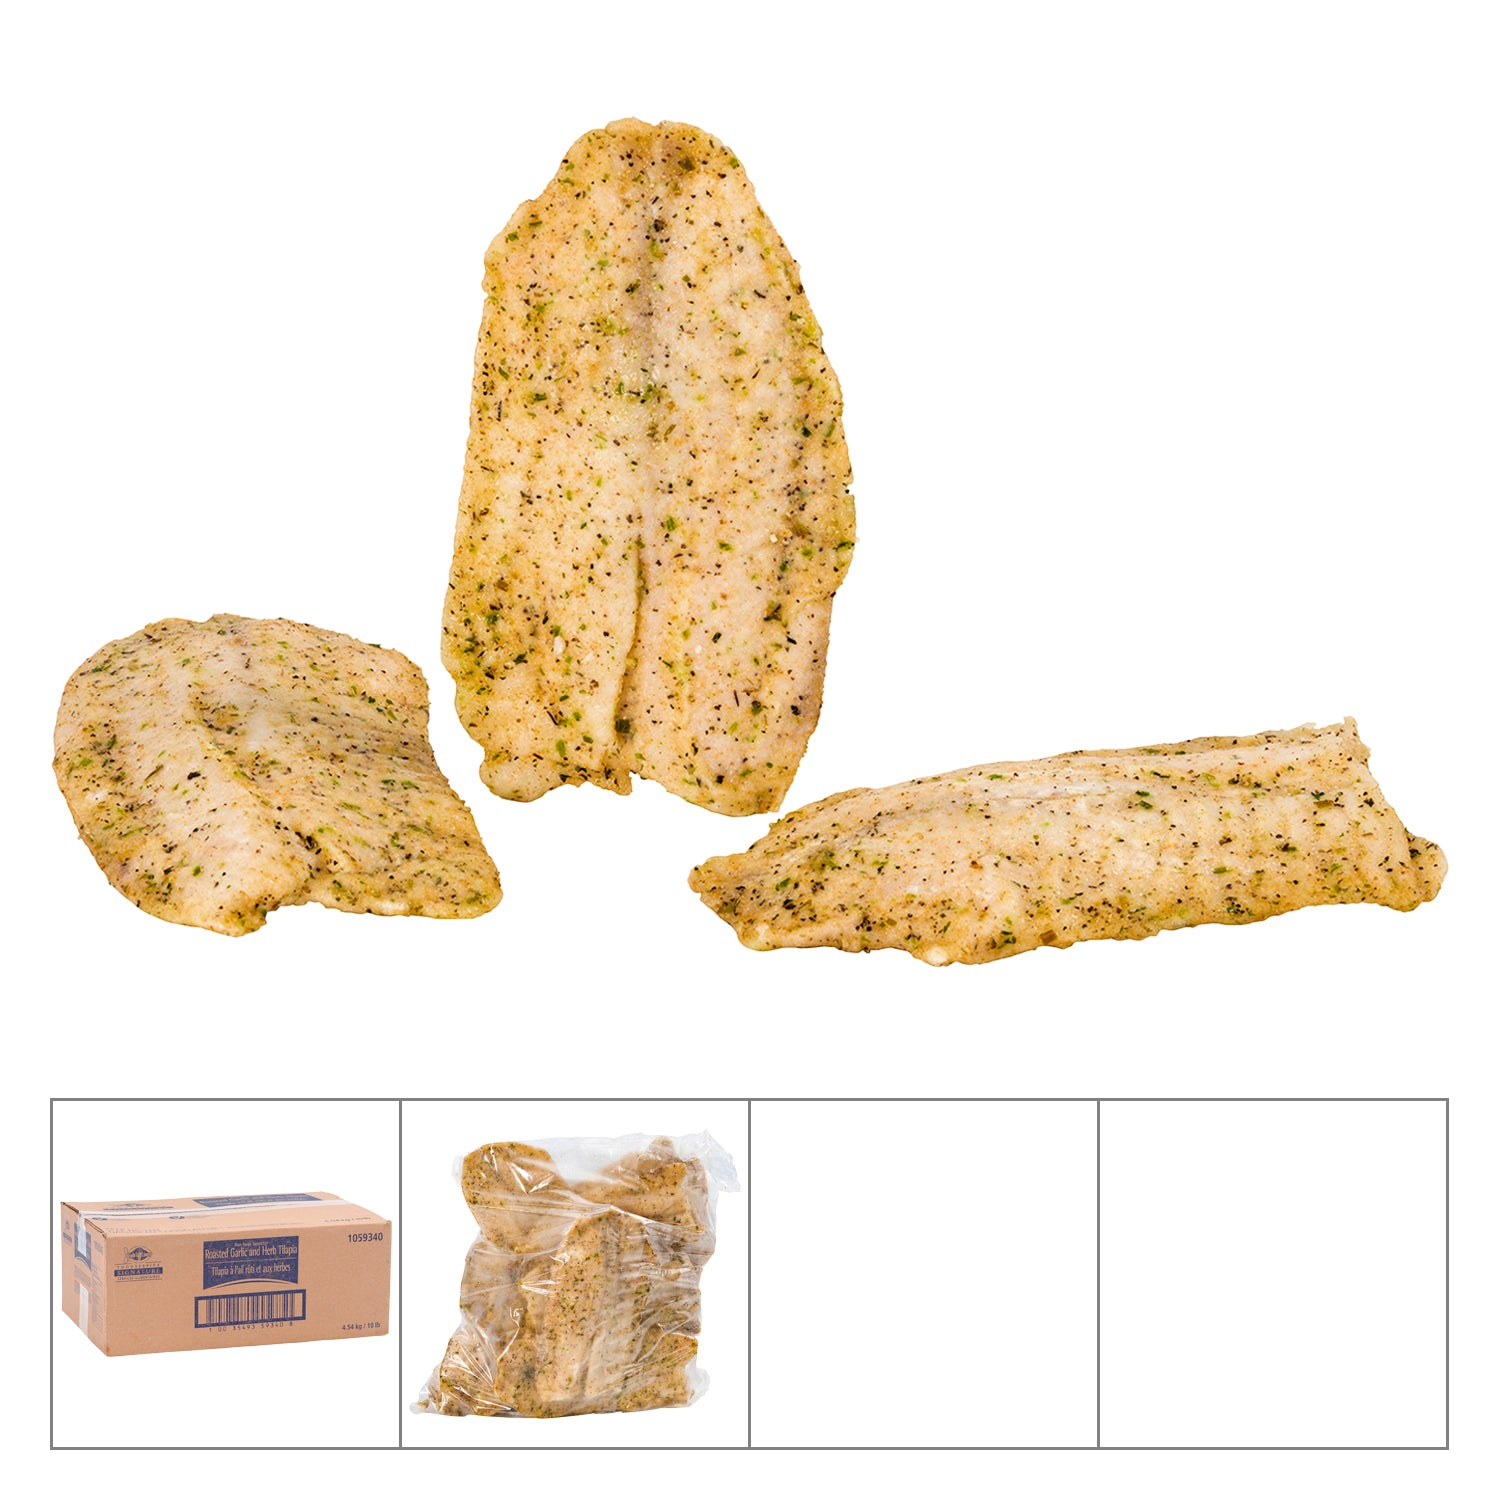 High Liner Frozen Pan Seared Garlic & Her Tilapia Fillet 5 oz - 32 Pack [$2.97/each]